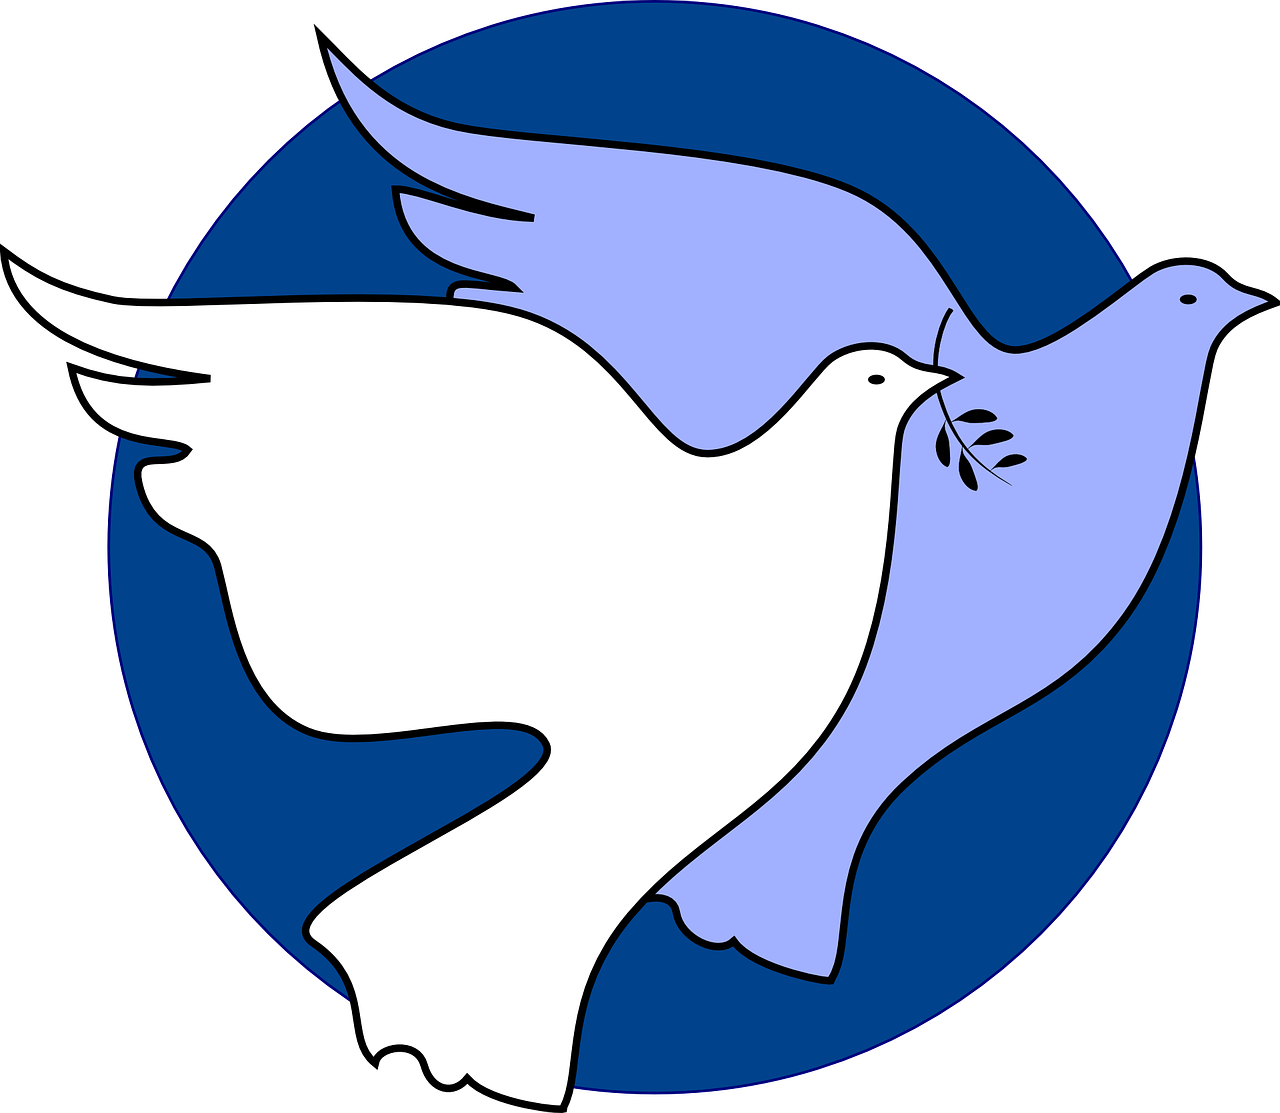 Peace clipart non violence Scheduled in Carbondale Peace dove